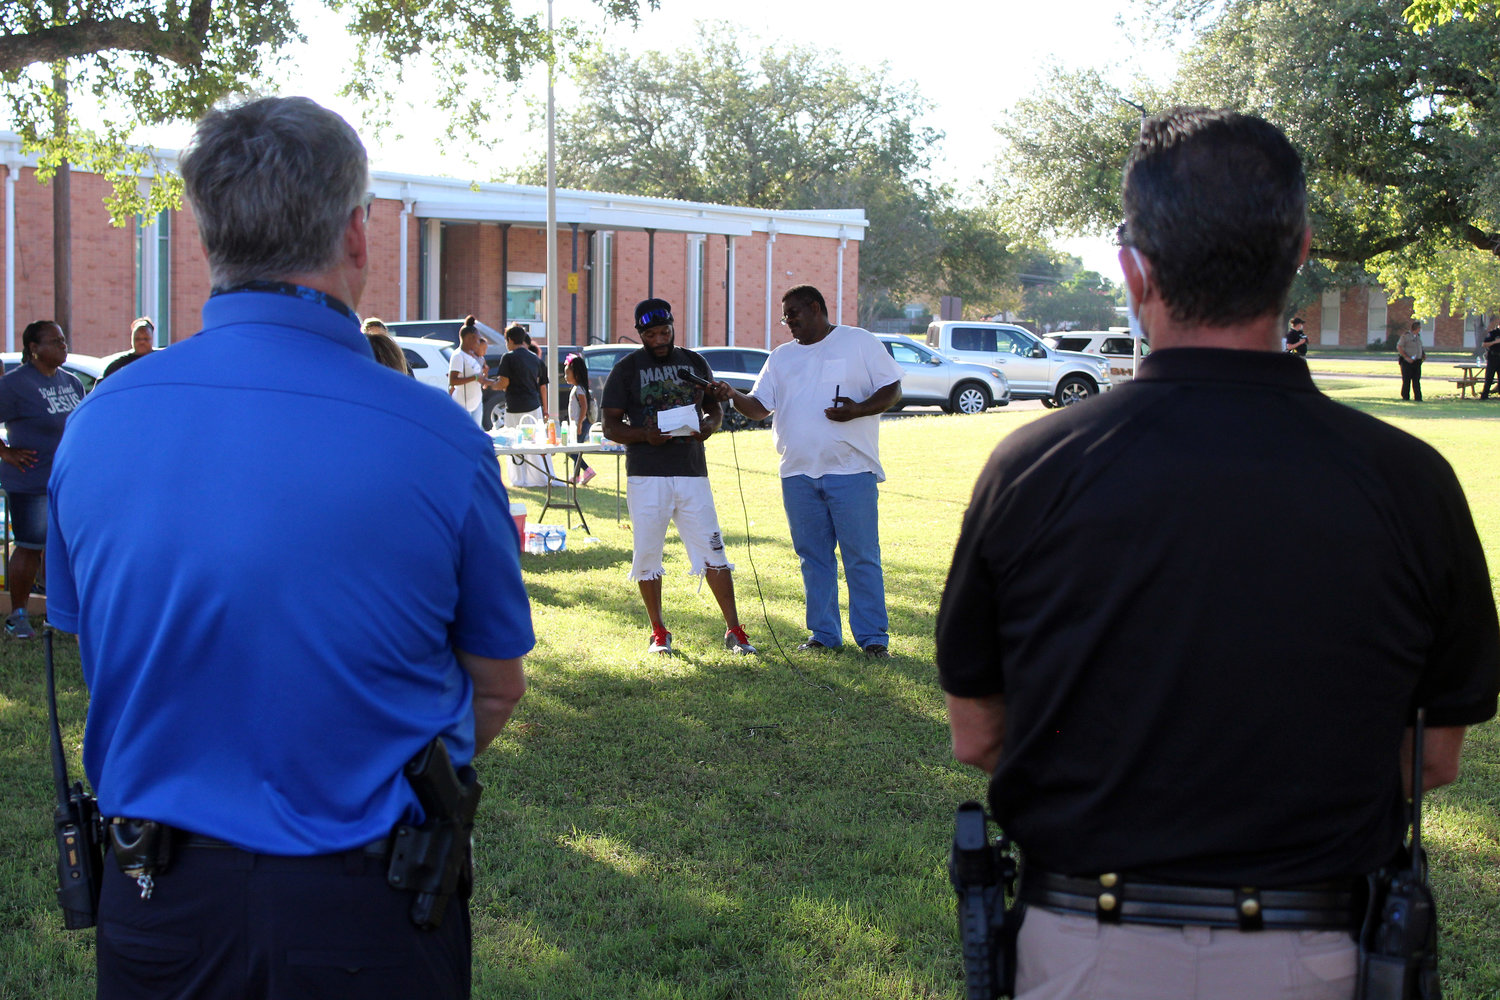 Gonzales Police Chief Tim Crow, left, and Gonzales County Sheriff Matthew Atkinson, right, listen to speakers at Friday's Juneteenth celebration at City Hall.